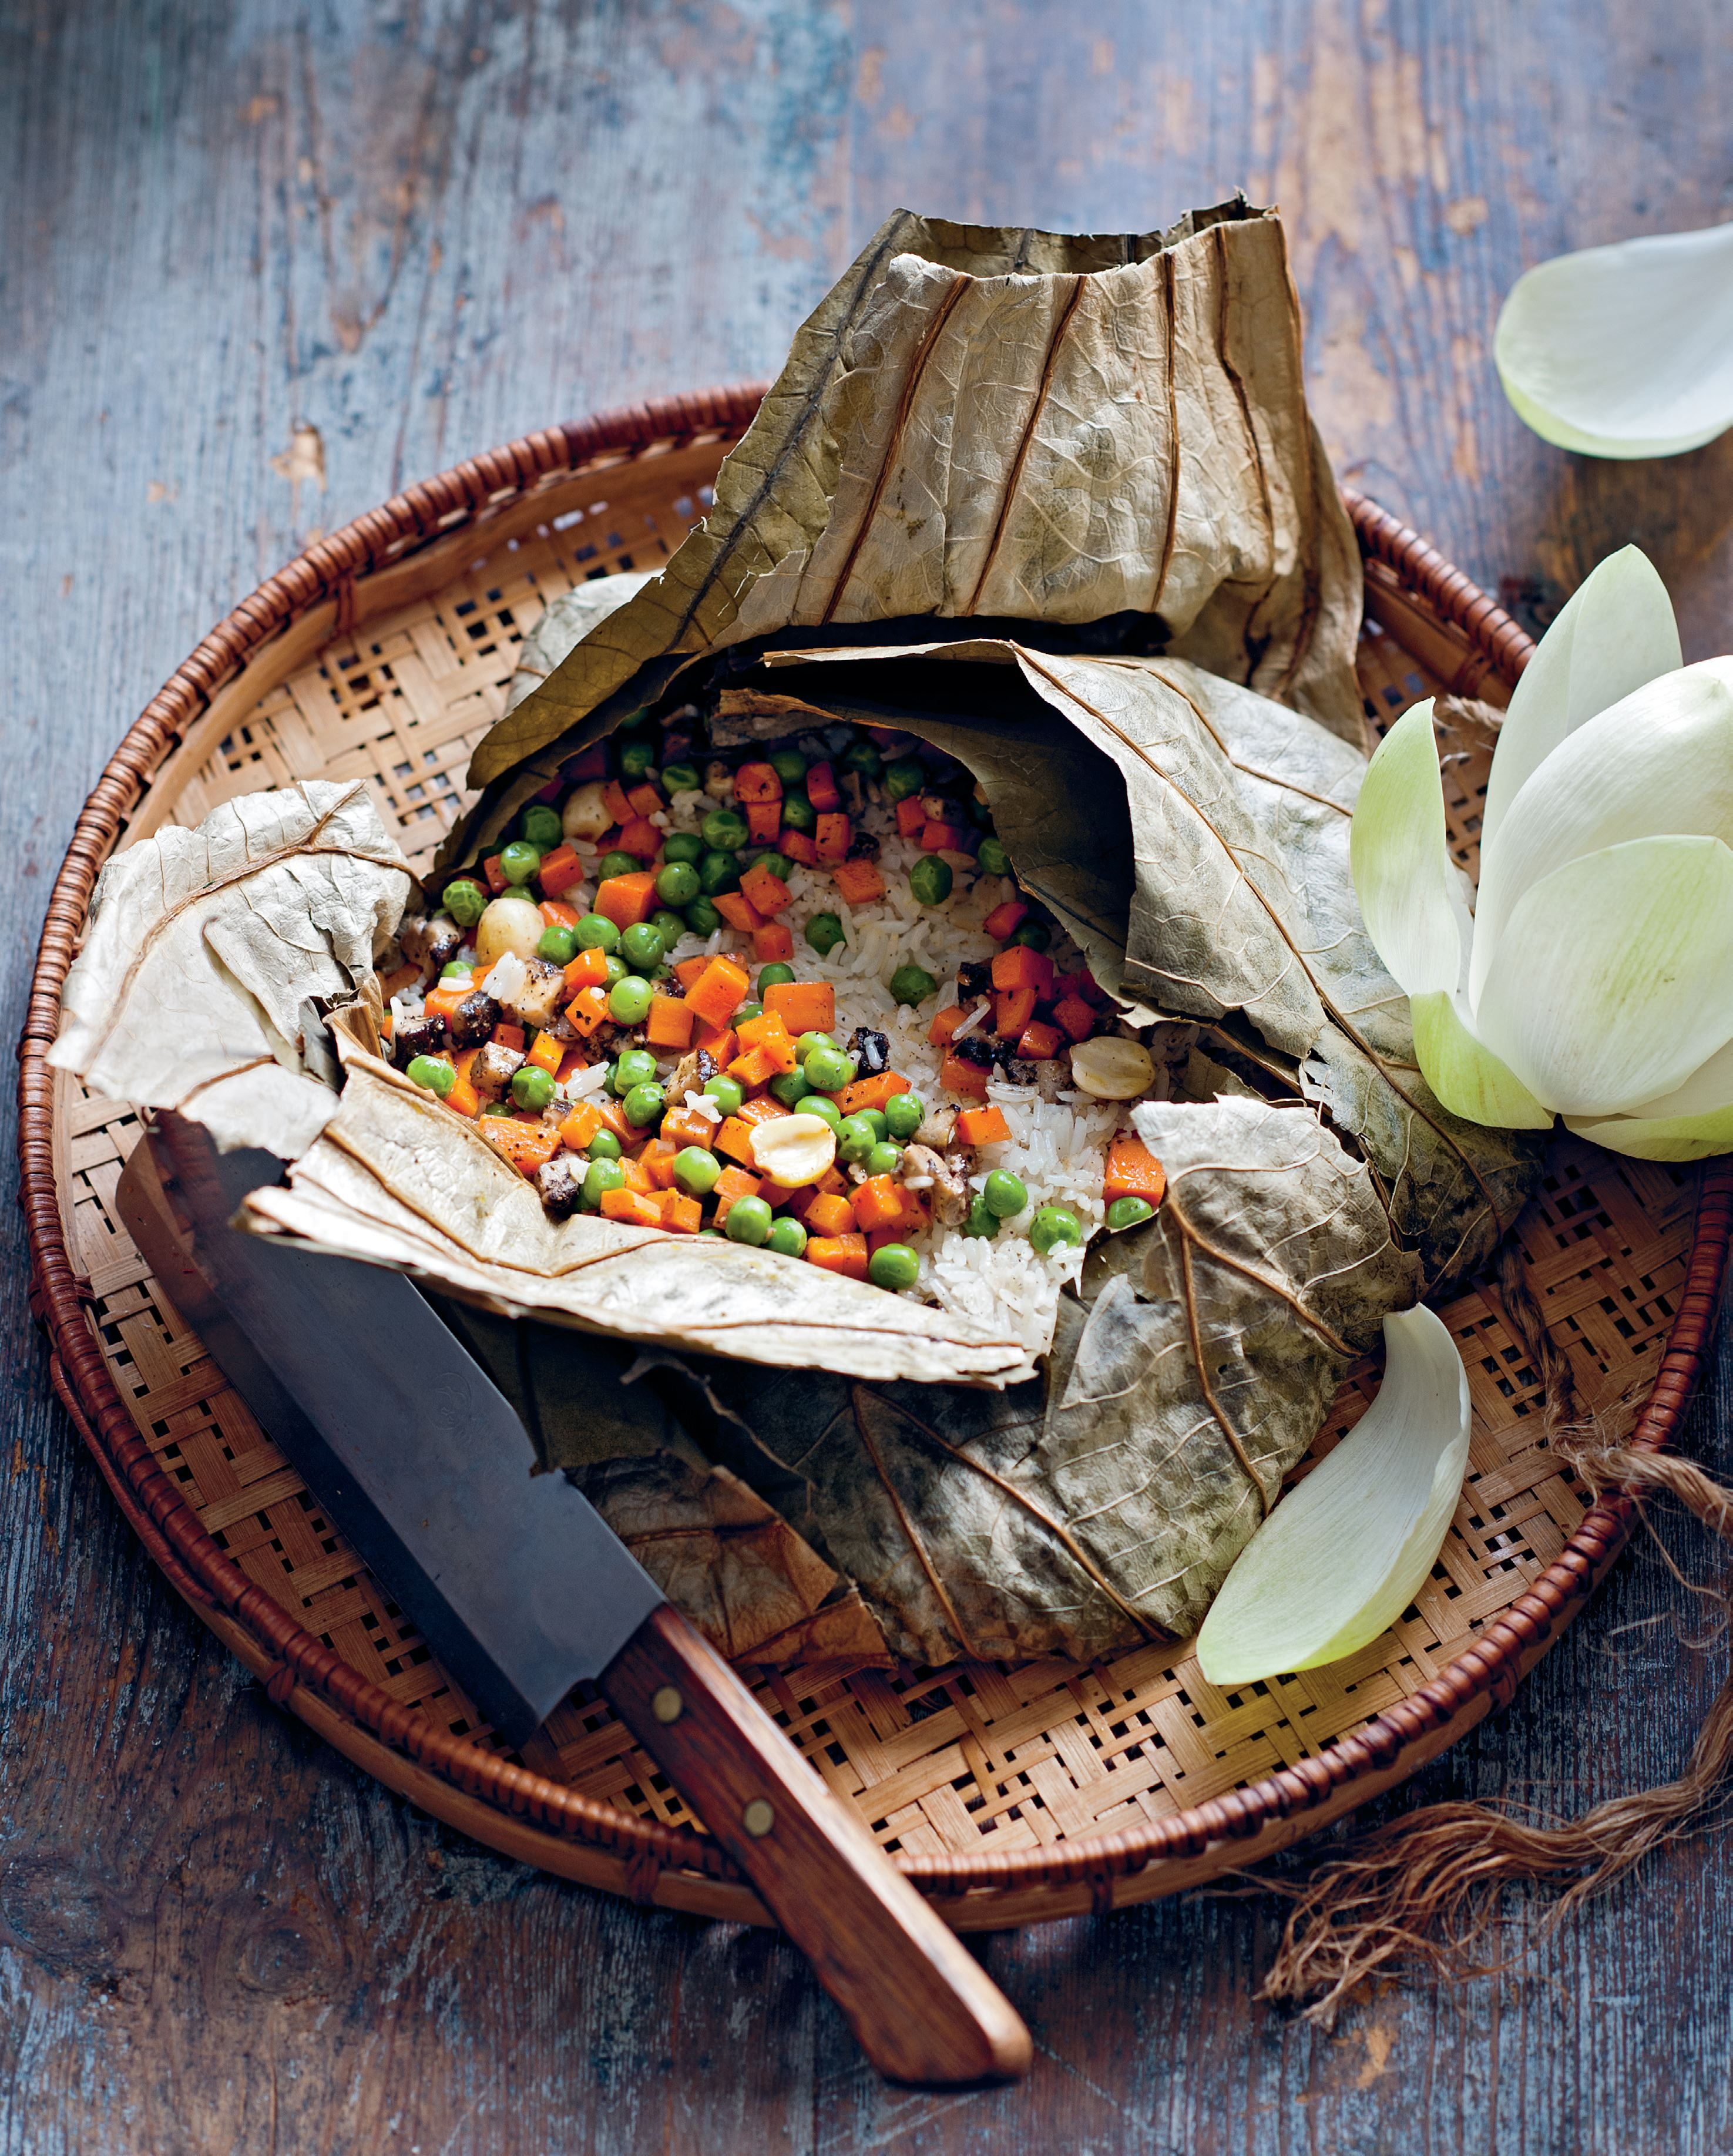 Pagoda rice steamed in lotus leaf